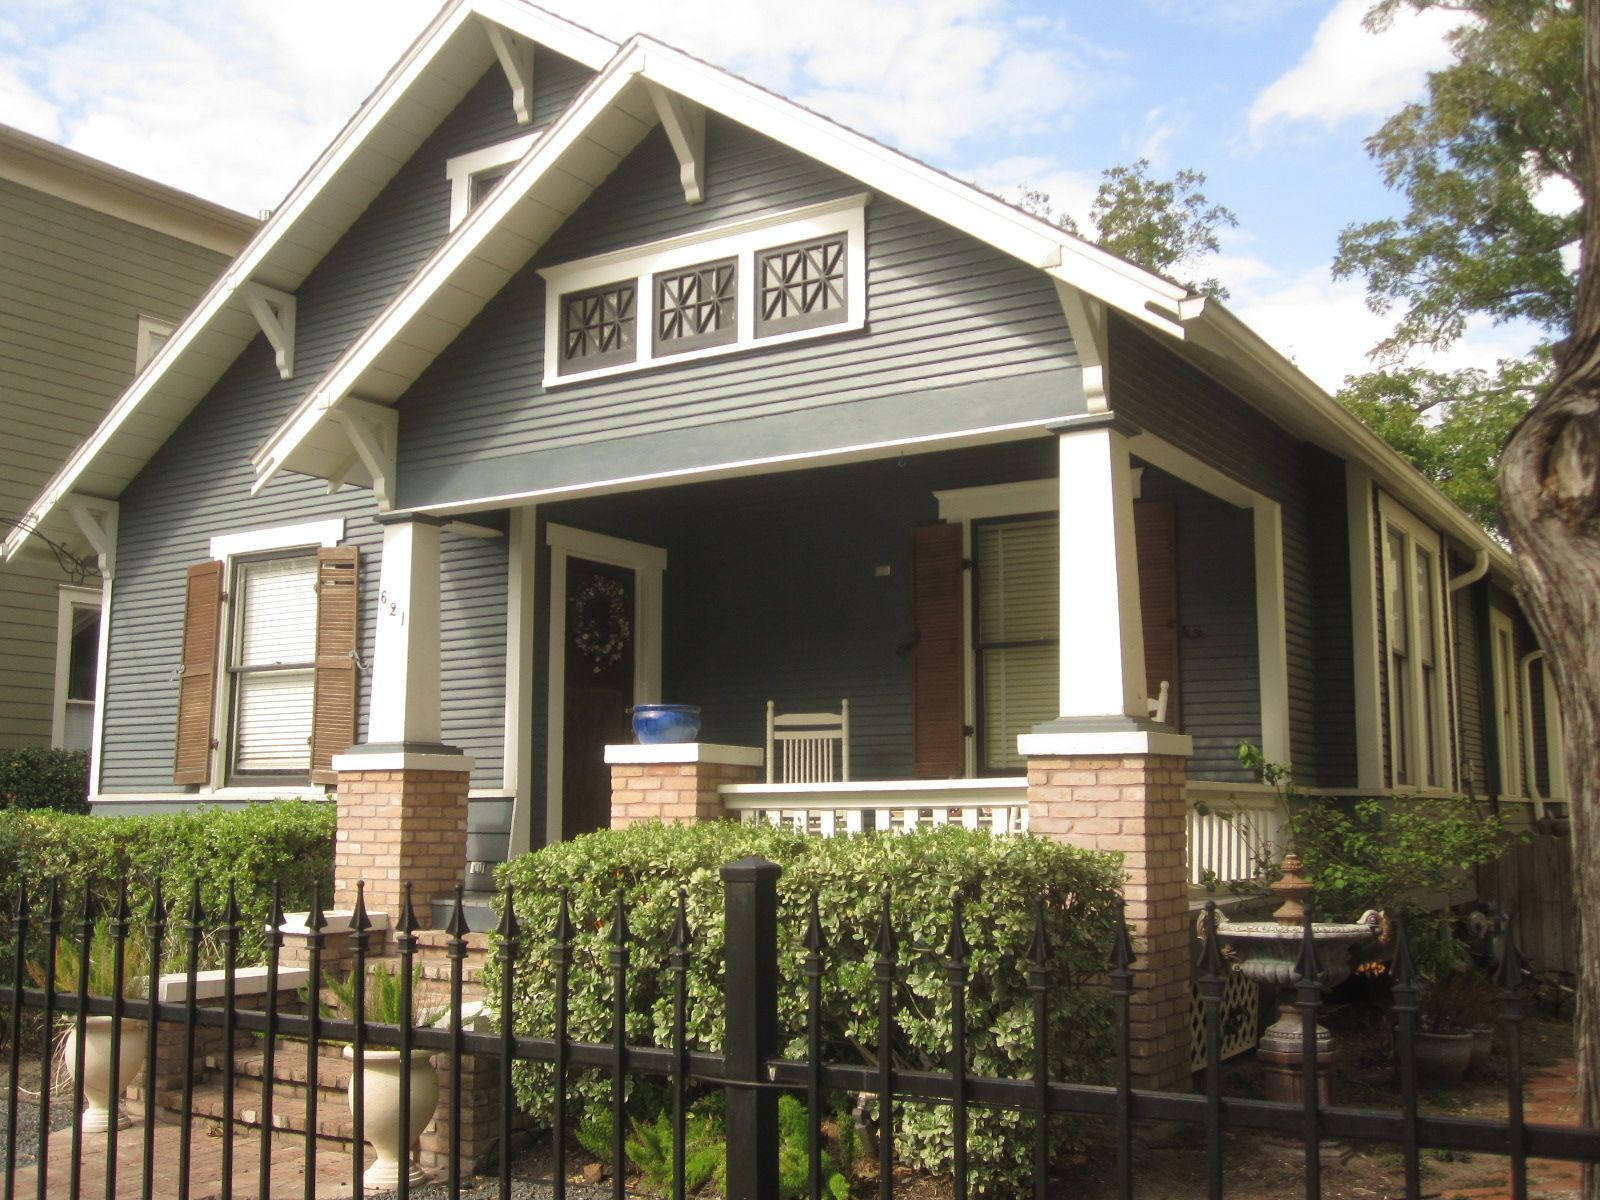 Bungalow Color Schemes Another Fine Bungalow With A Historic Shade Of Gray The Windows And